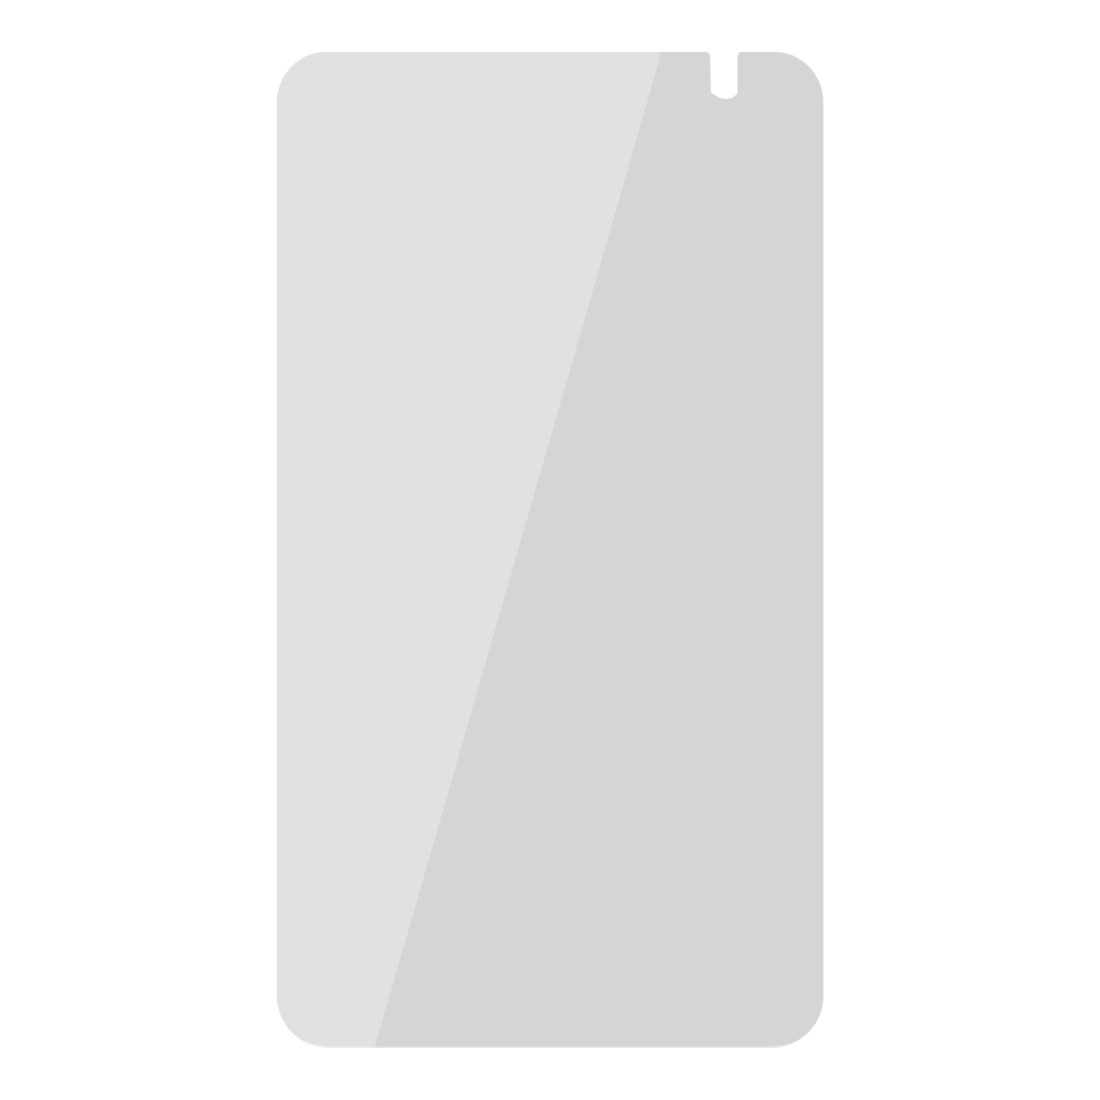 Transparent Anti-Fingerprint Anti-glare Screen Protector Film for HTC S510B